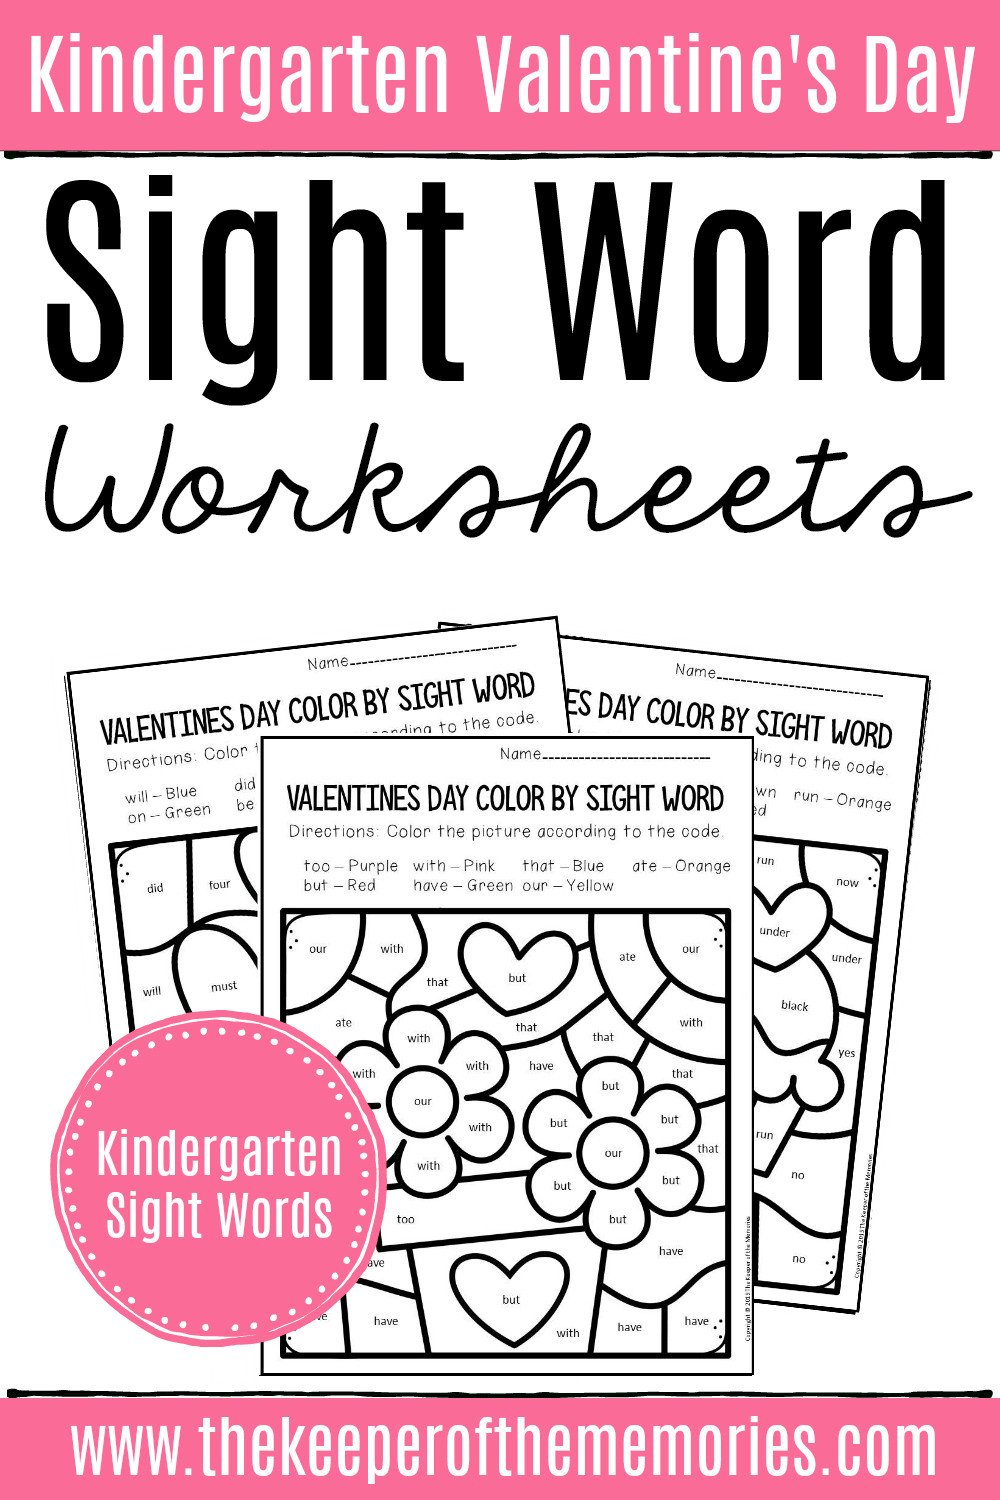 Color by Sight Word Valentines Day Kindergarten Worksheets 2